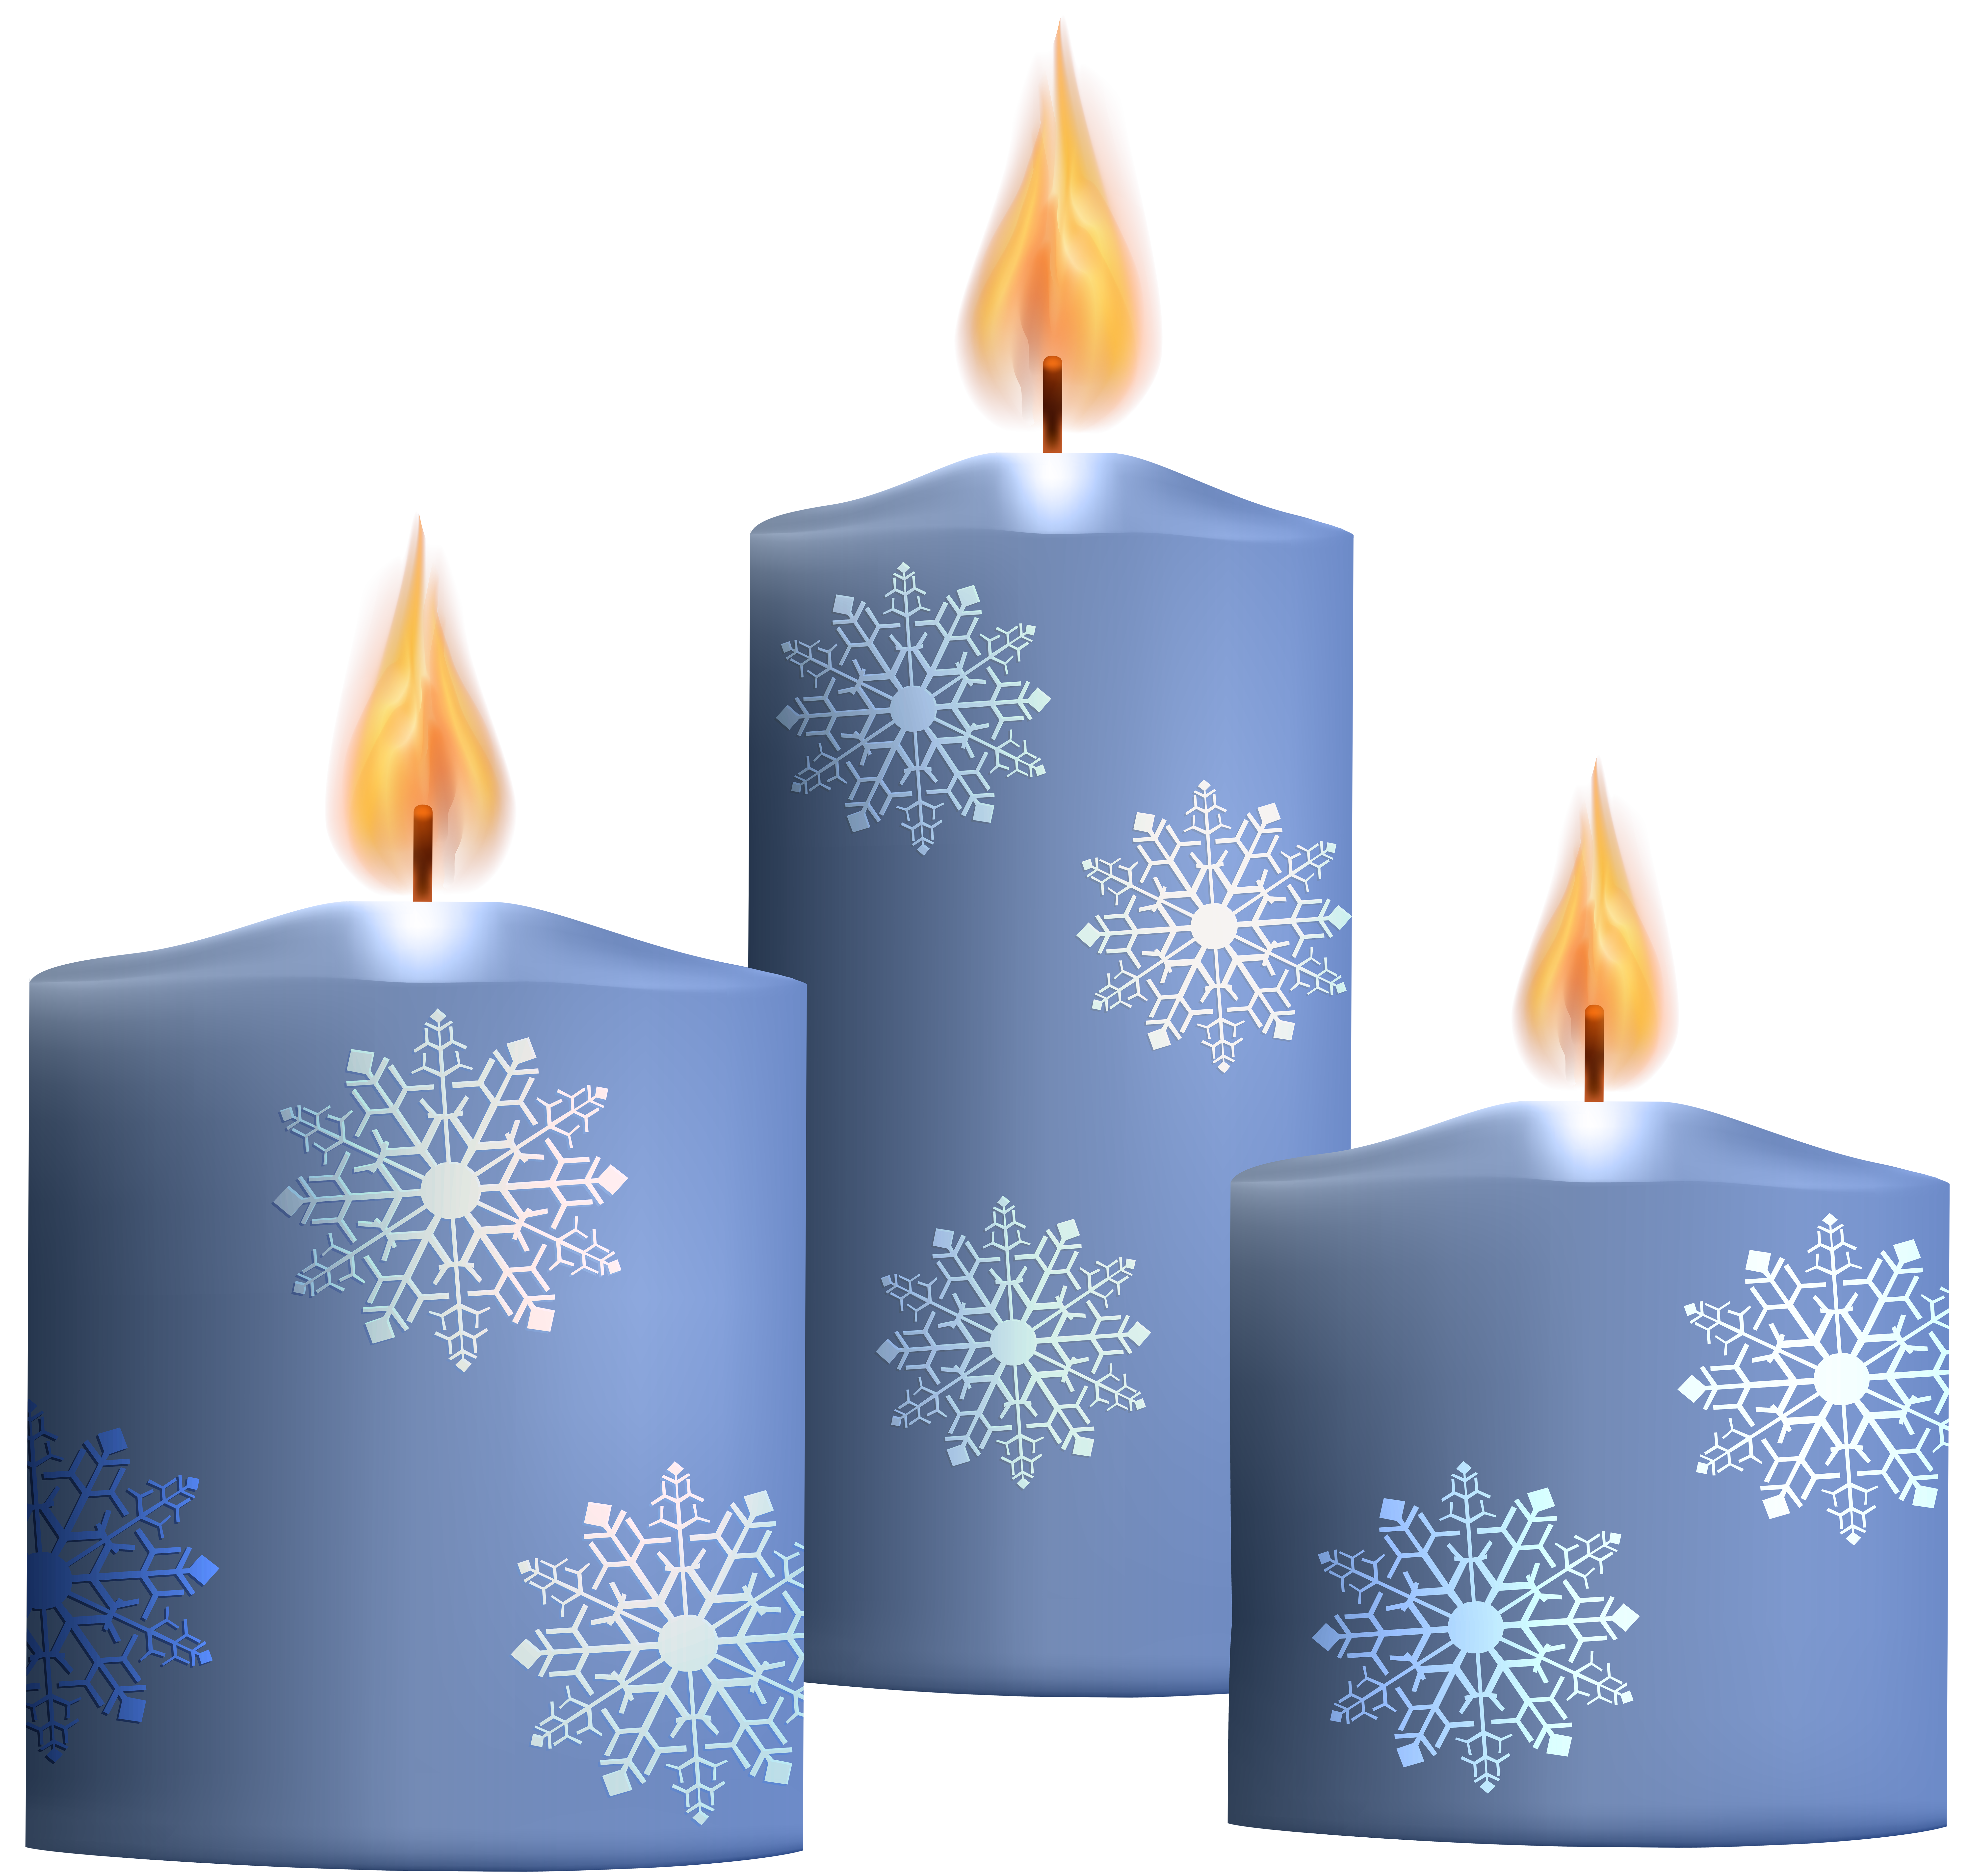 Piano clipart winter. Candles transparent png clip